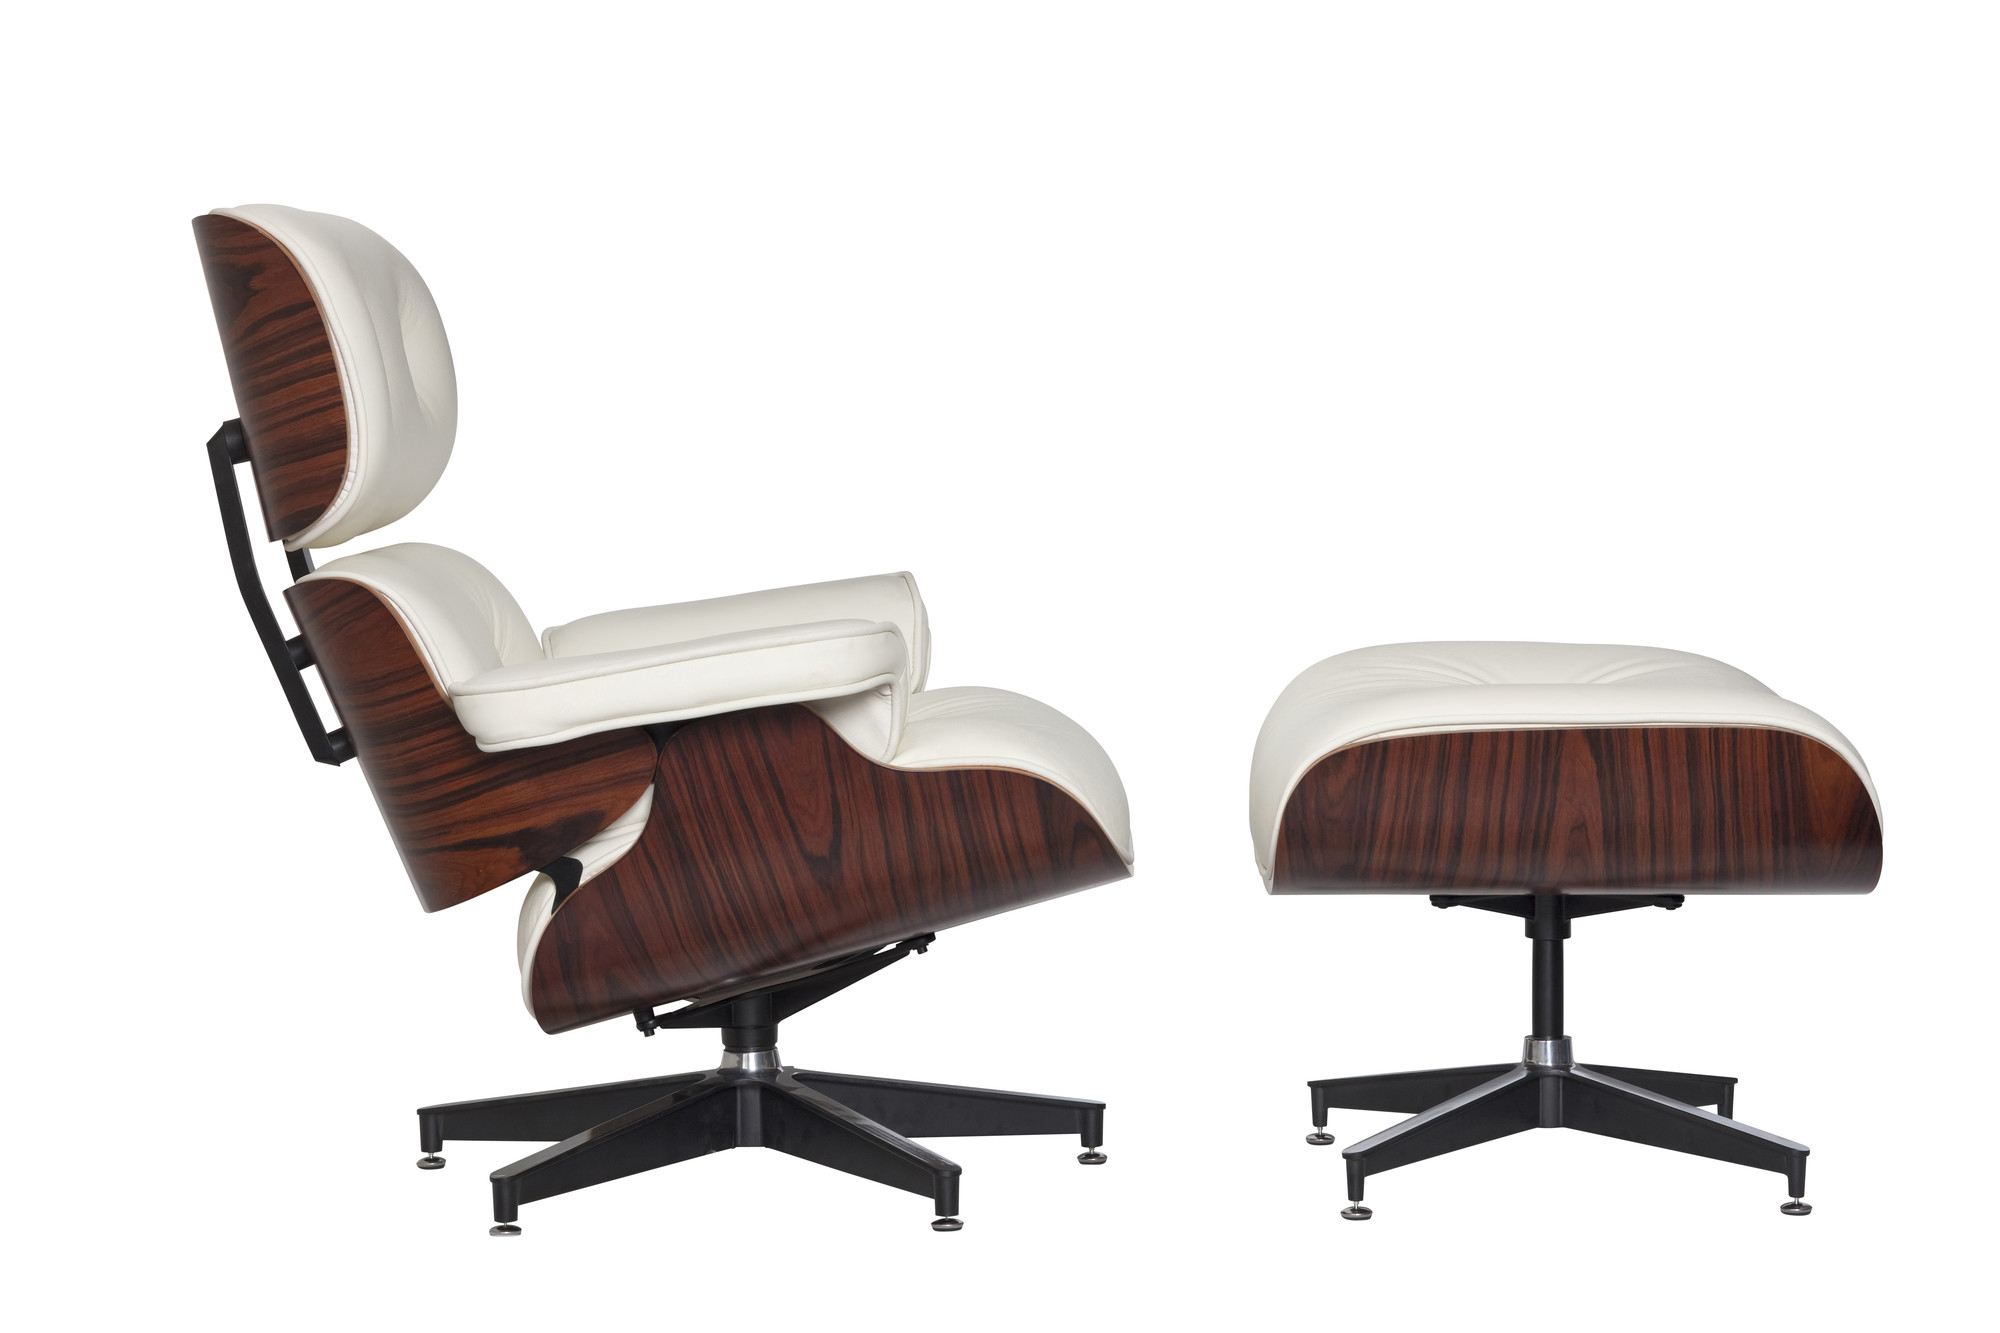 New eames classic replica lounge chair ottoman ebay for Eames chair replica deutschland